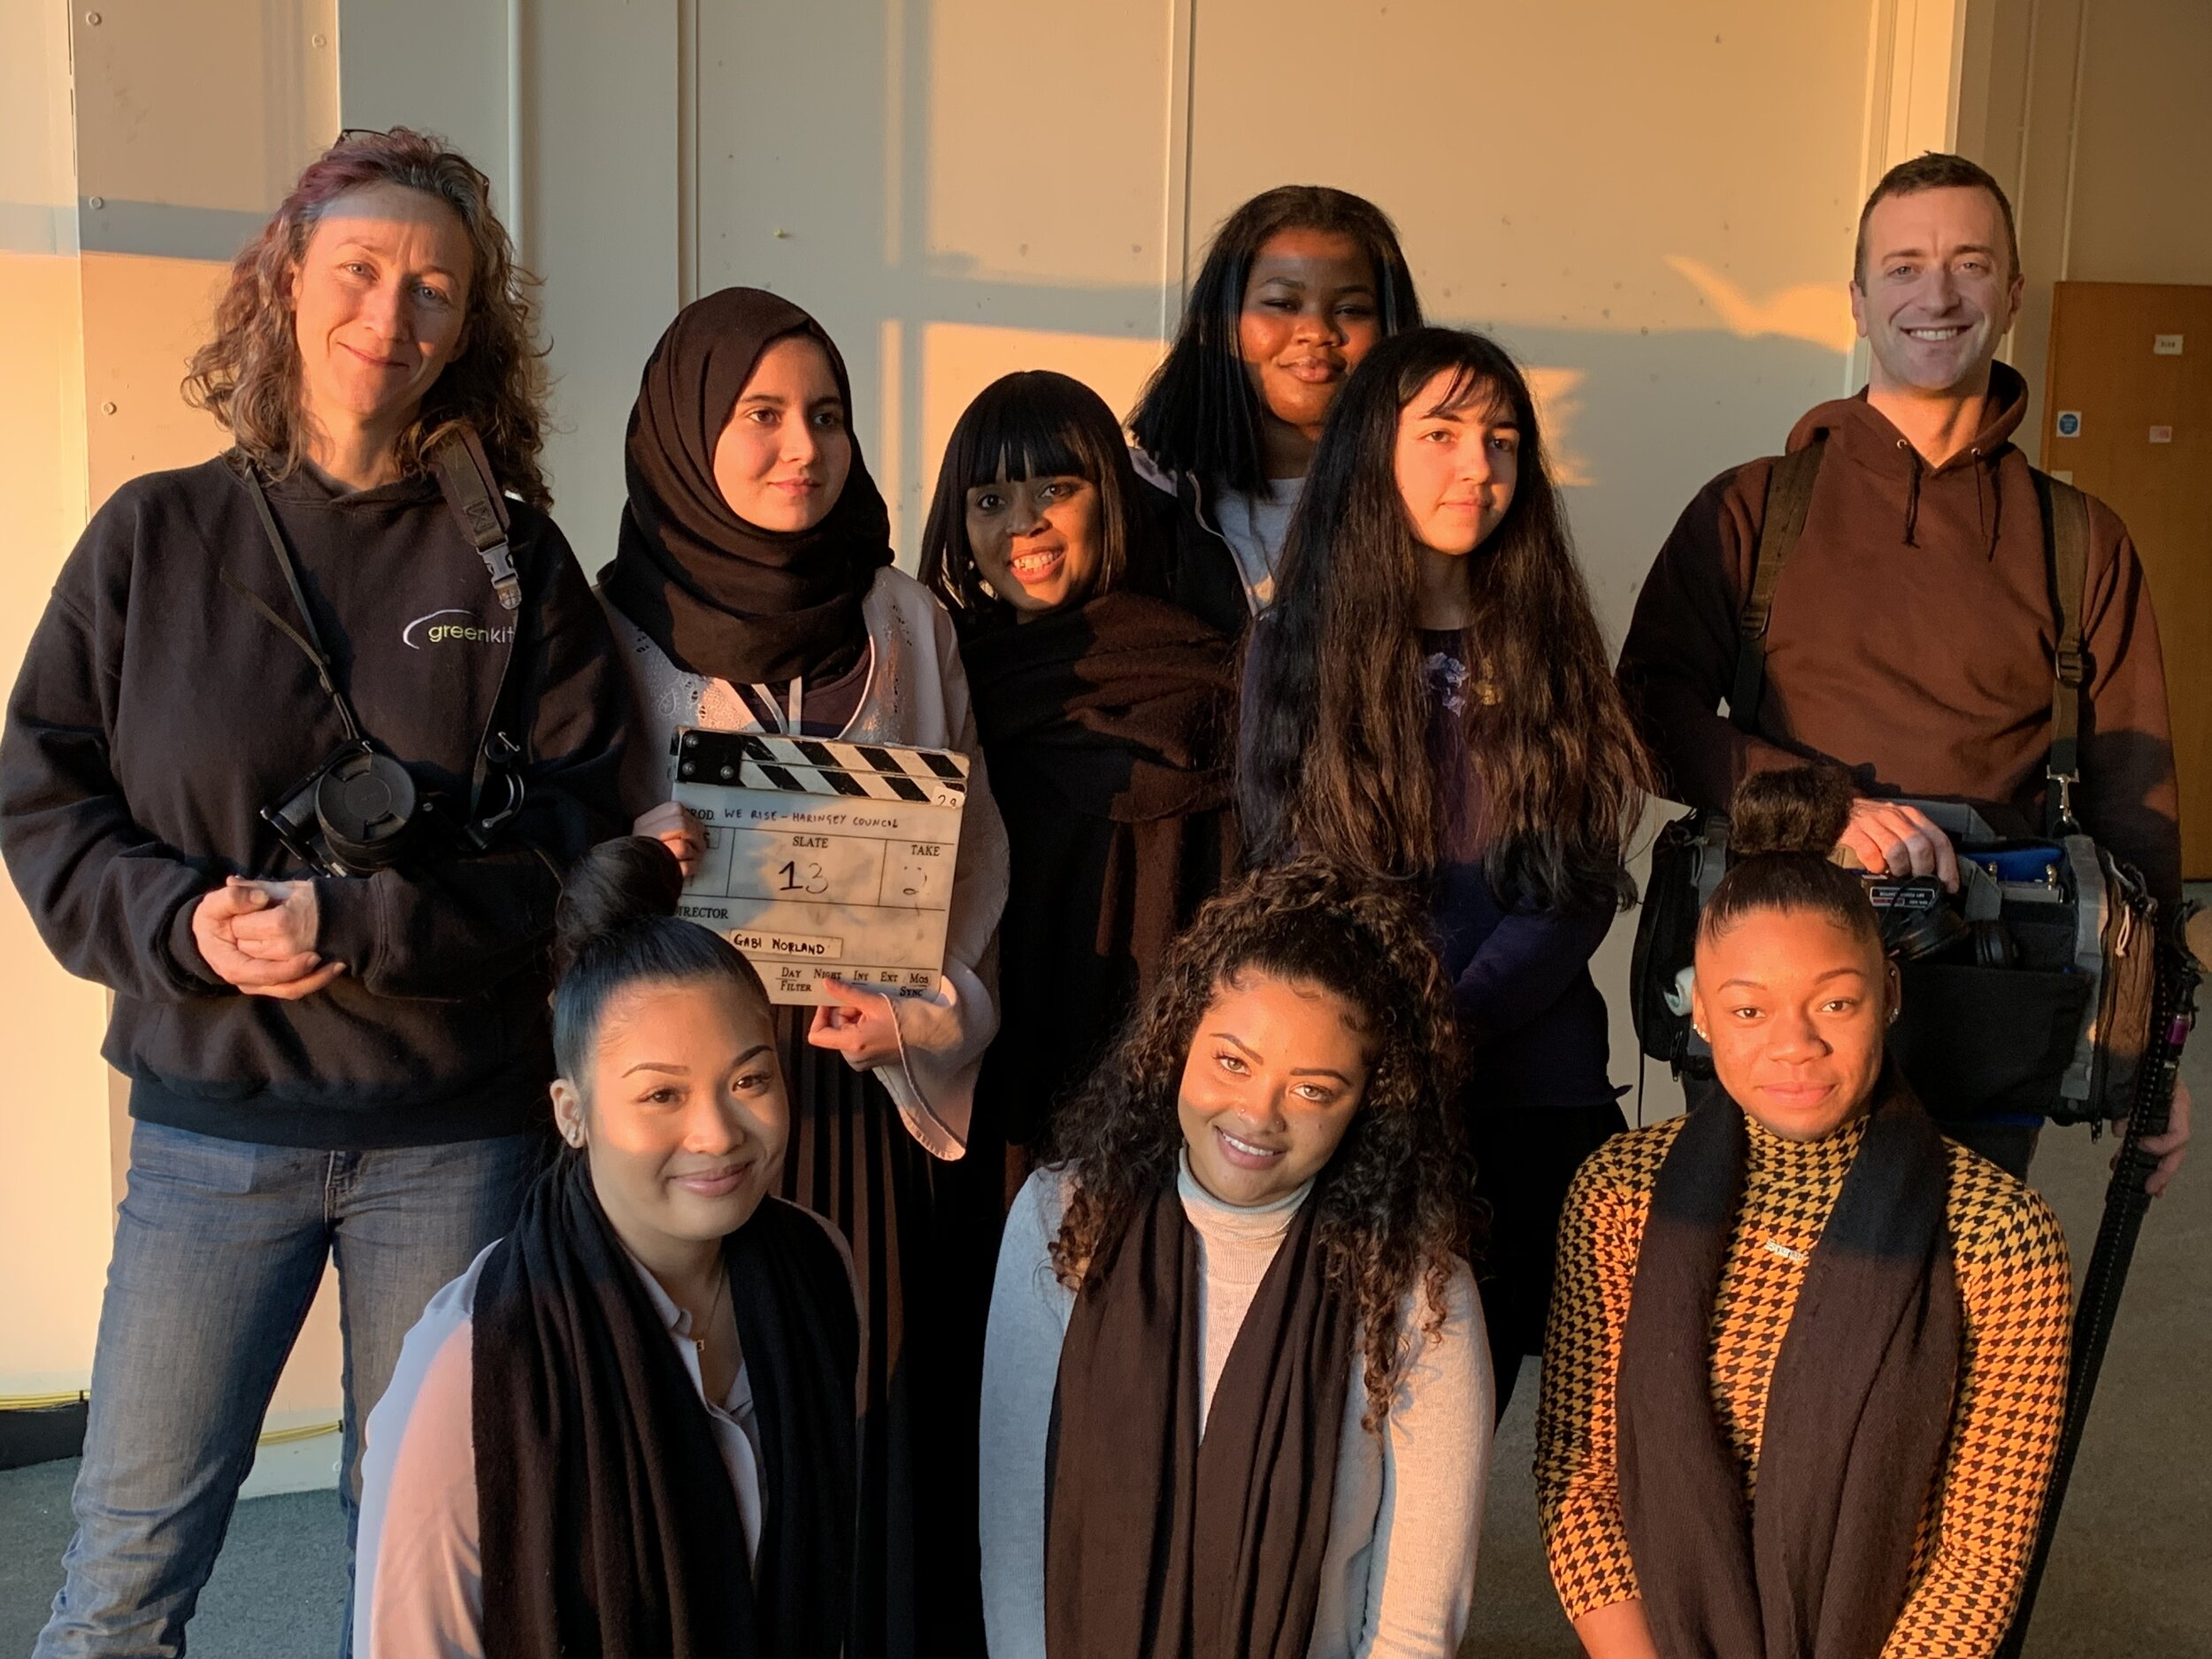 The film-making team. Back row, from left, Gabi Norland (Director of Photography), Betool Hadj-cherif, (Director), Maxine Sobers, (Haringey Workforce Manager), Abena Antwi (Assistant Director), Aiya Brouk (Visual Design), Martin Clarke (Sound Recordist). Front row from left, Stephanie Castillo, Ellise Carty and Shanay Johnson (Haringey apprentices )